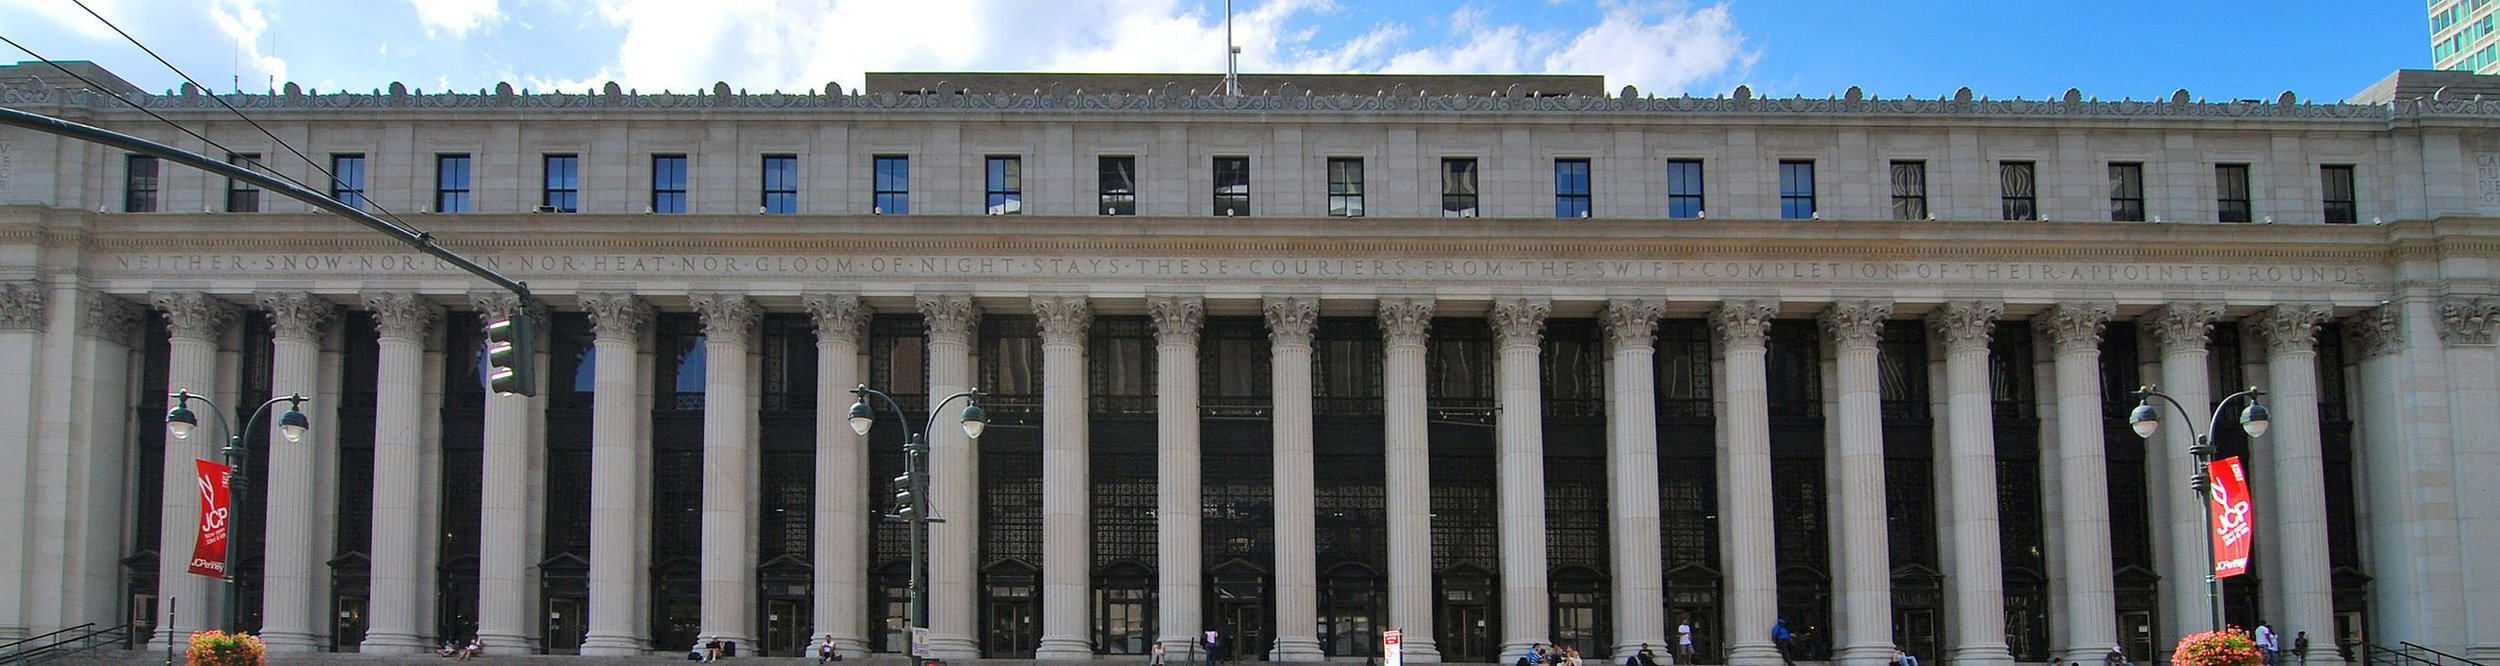 "Photo by Chensiyuan    Close up of the James A. Farley Post Office,  in Manhattan. Read the inscription over the columns:  "" Neither snow nor rain nor heat nor gloom of night stays these couriers from the swift completion of their appointed rounds''"